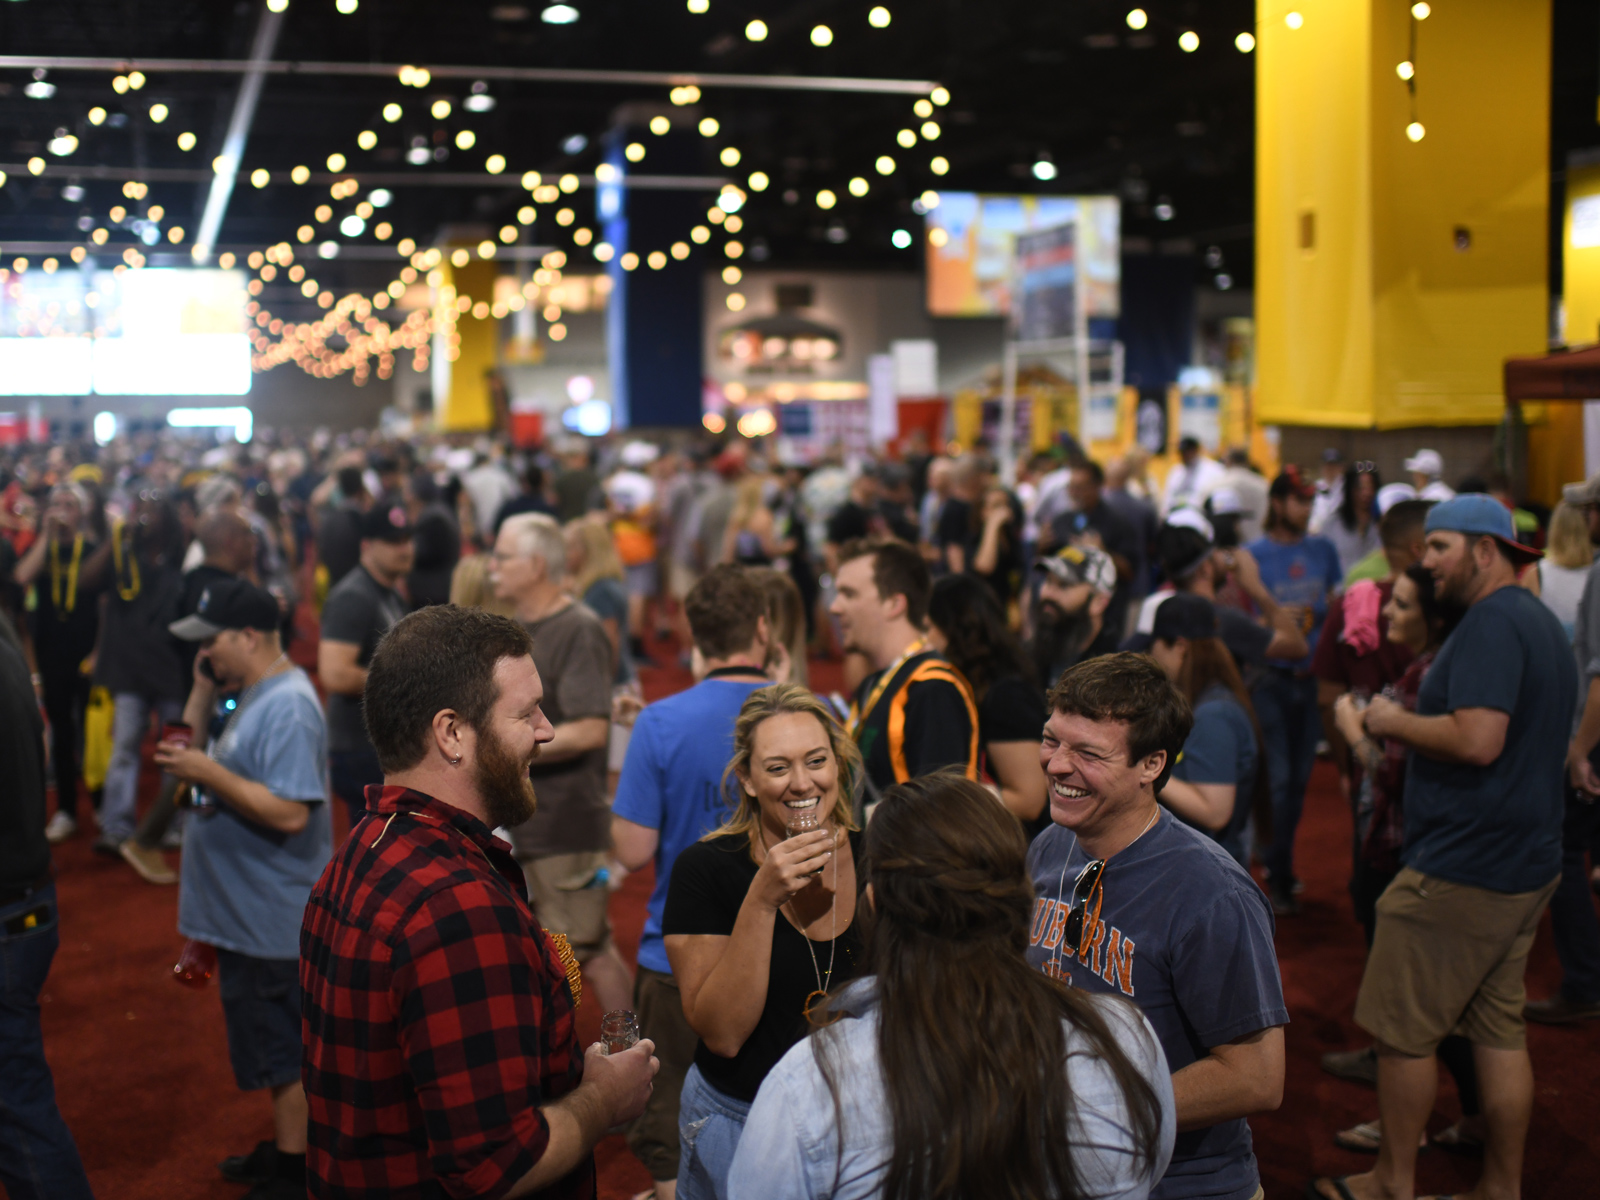 Great American Beer Festival 2019: Here's When You Can Buy Tickets for This Year's Event